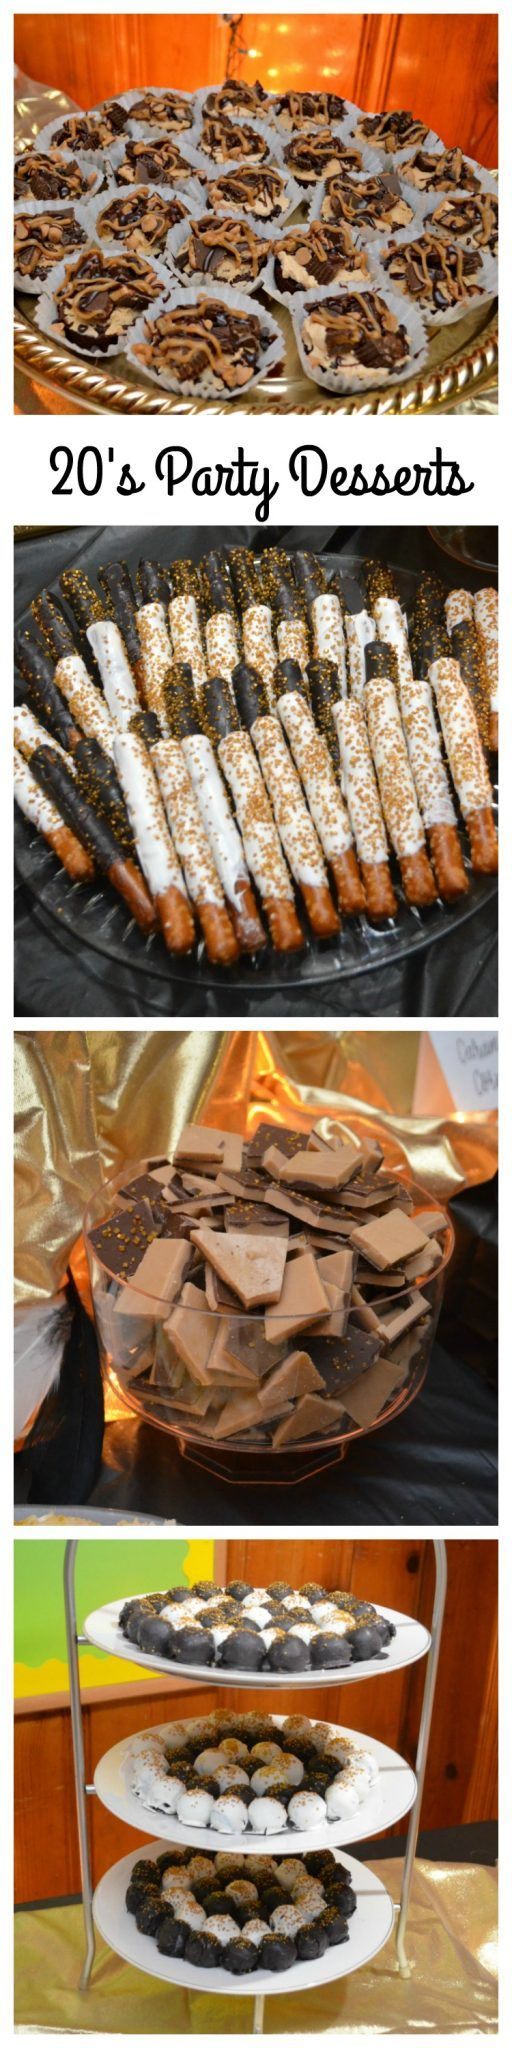 Roaring 20's Party Desserts